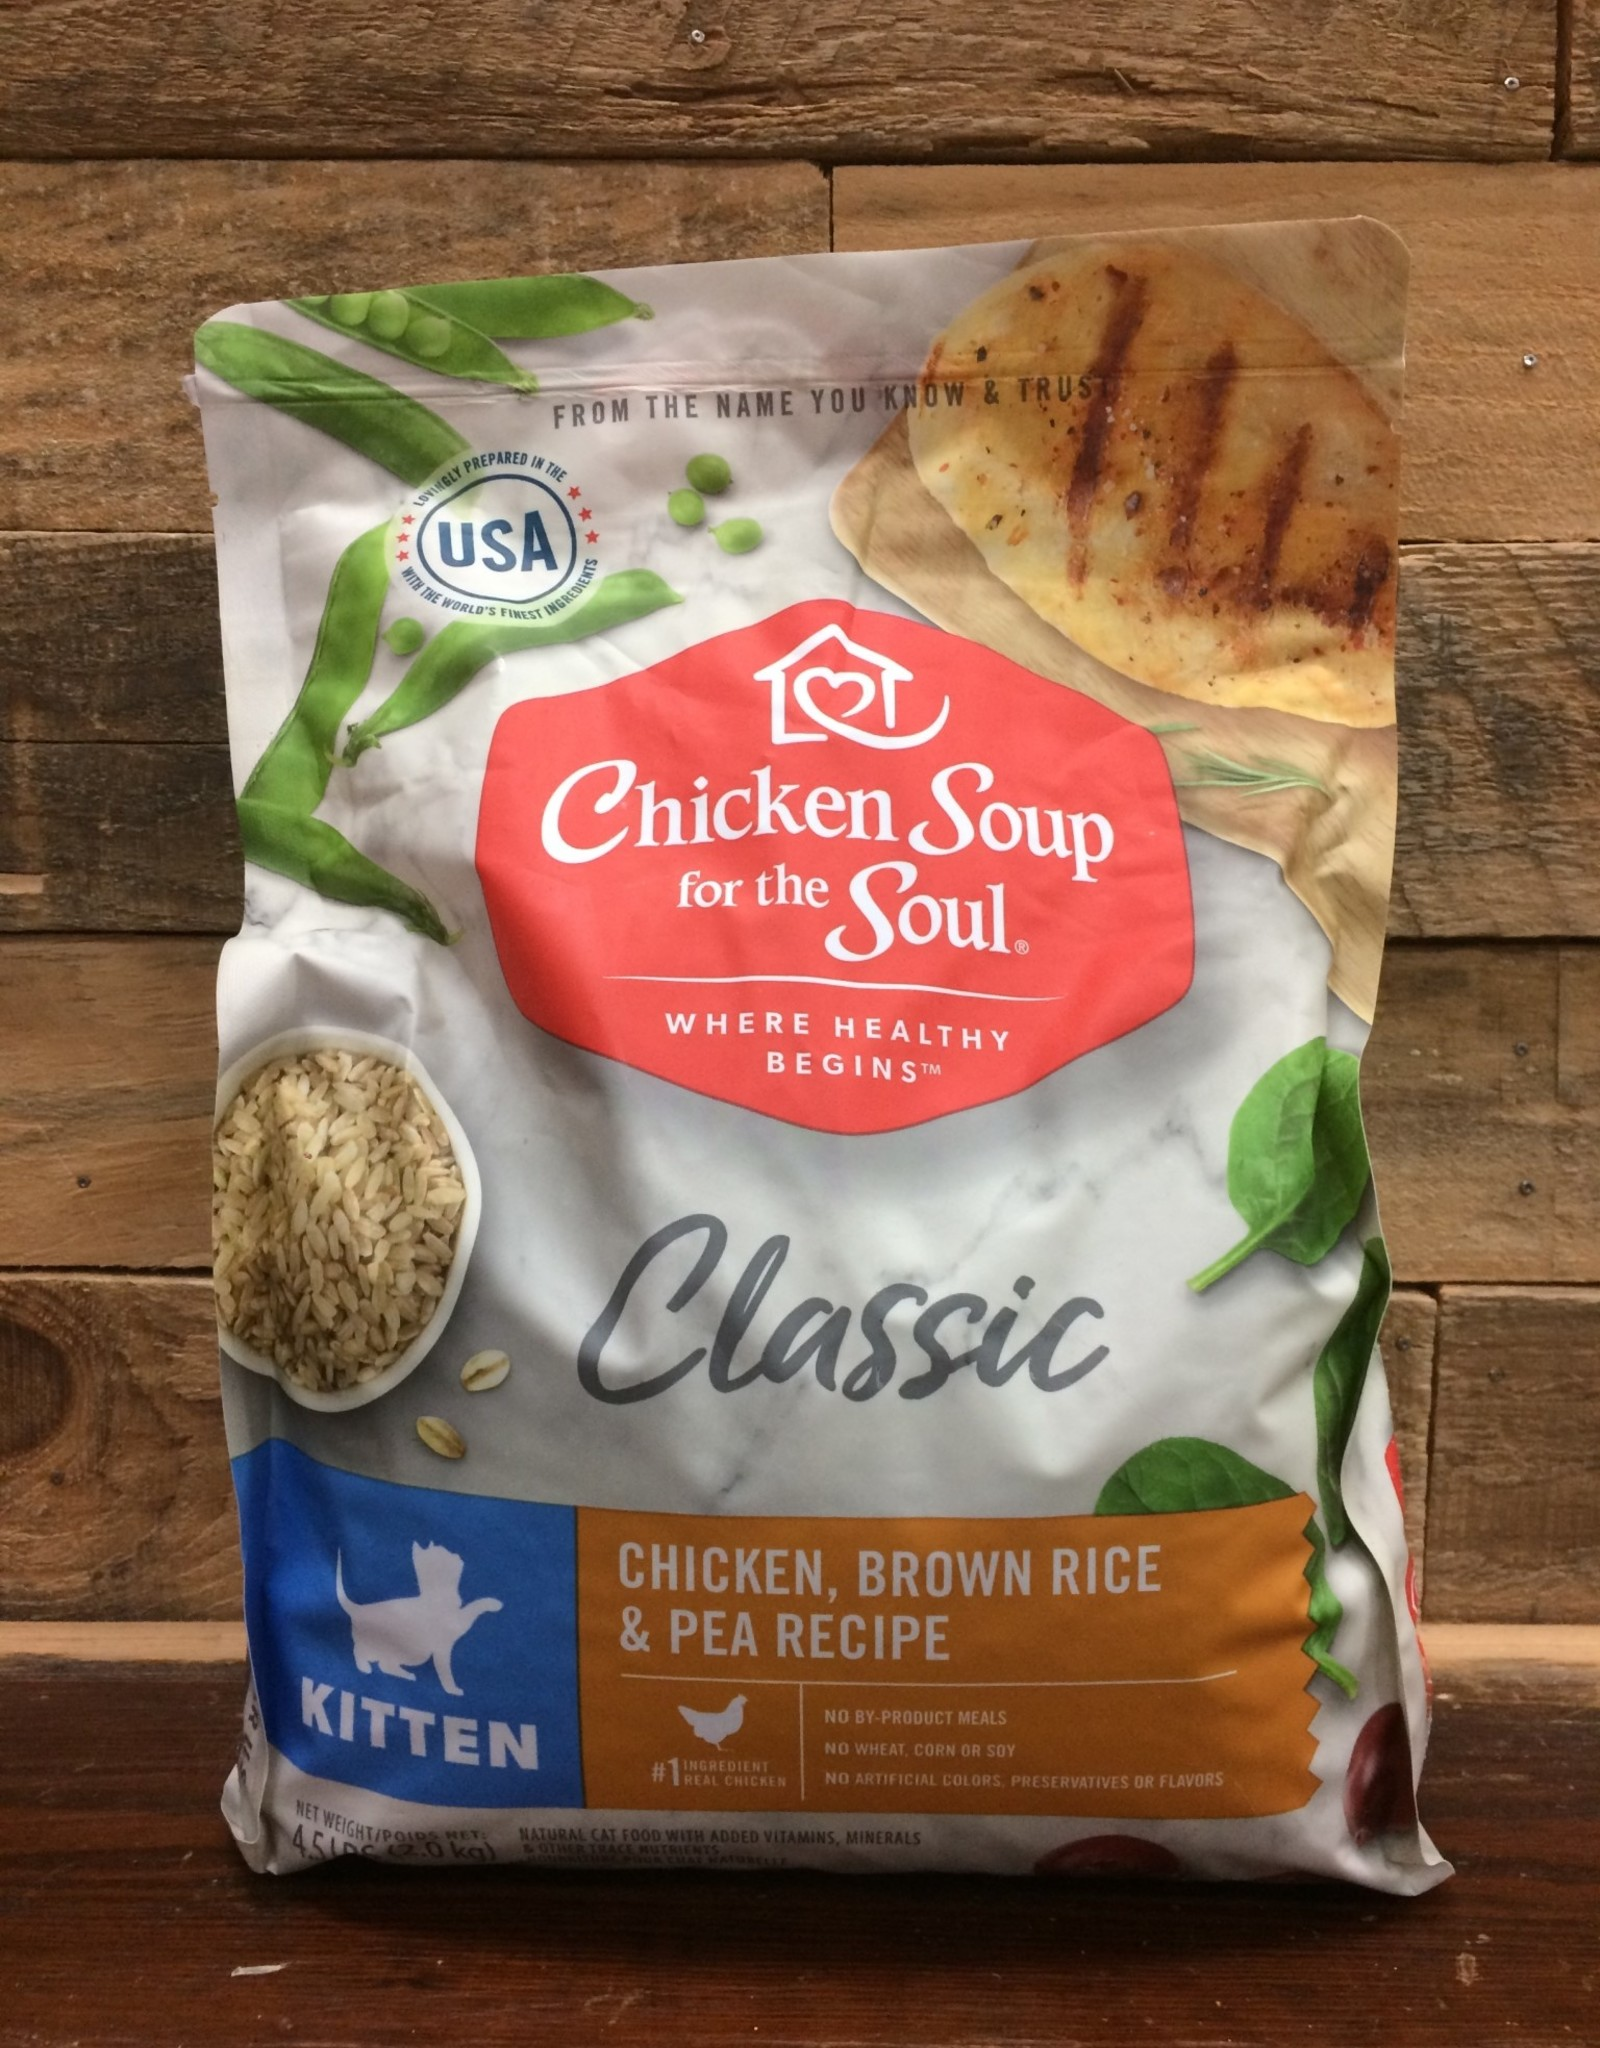 Chicken Soup for the Soul Chicken Soup Cat Kitten 4.5#